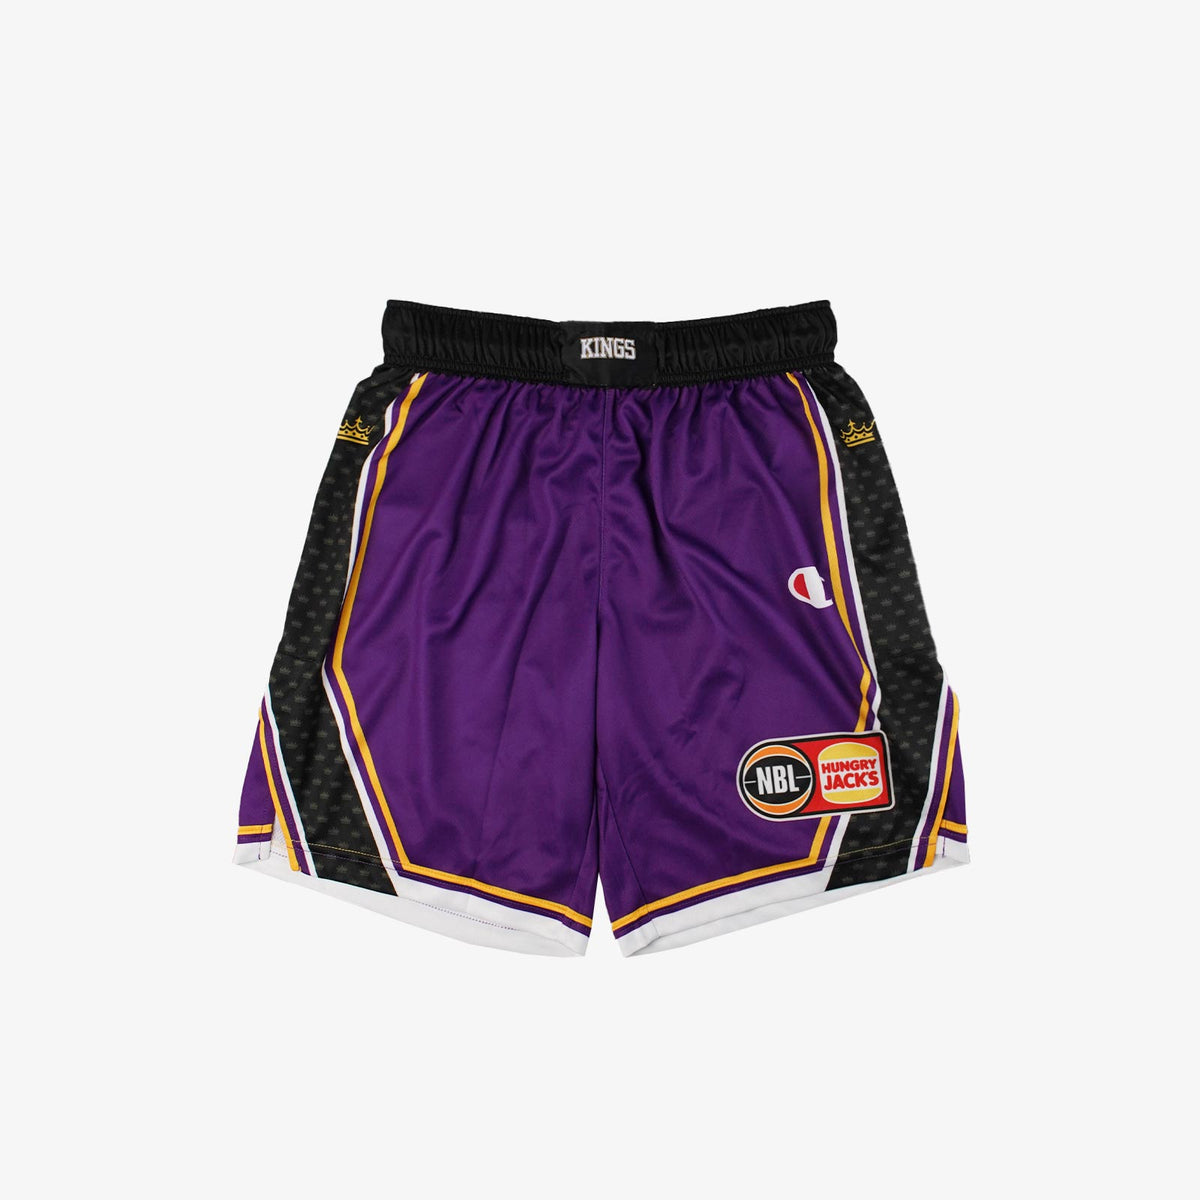 Sydney Kings NBL Home On Court Shorts - Purple